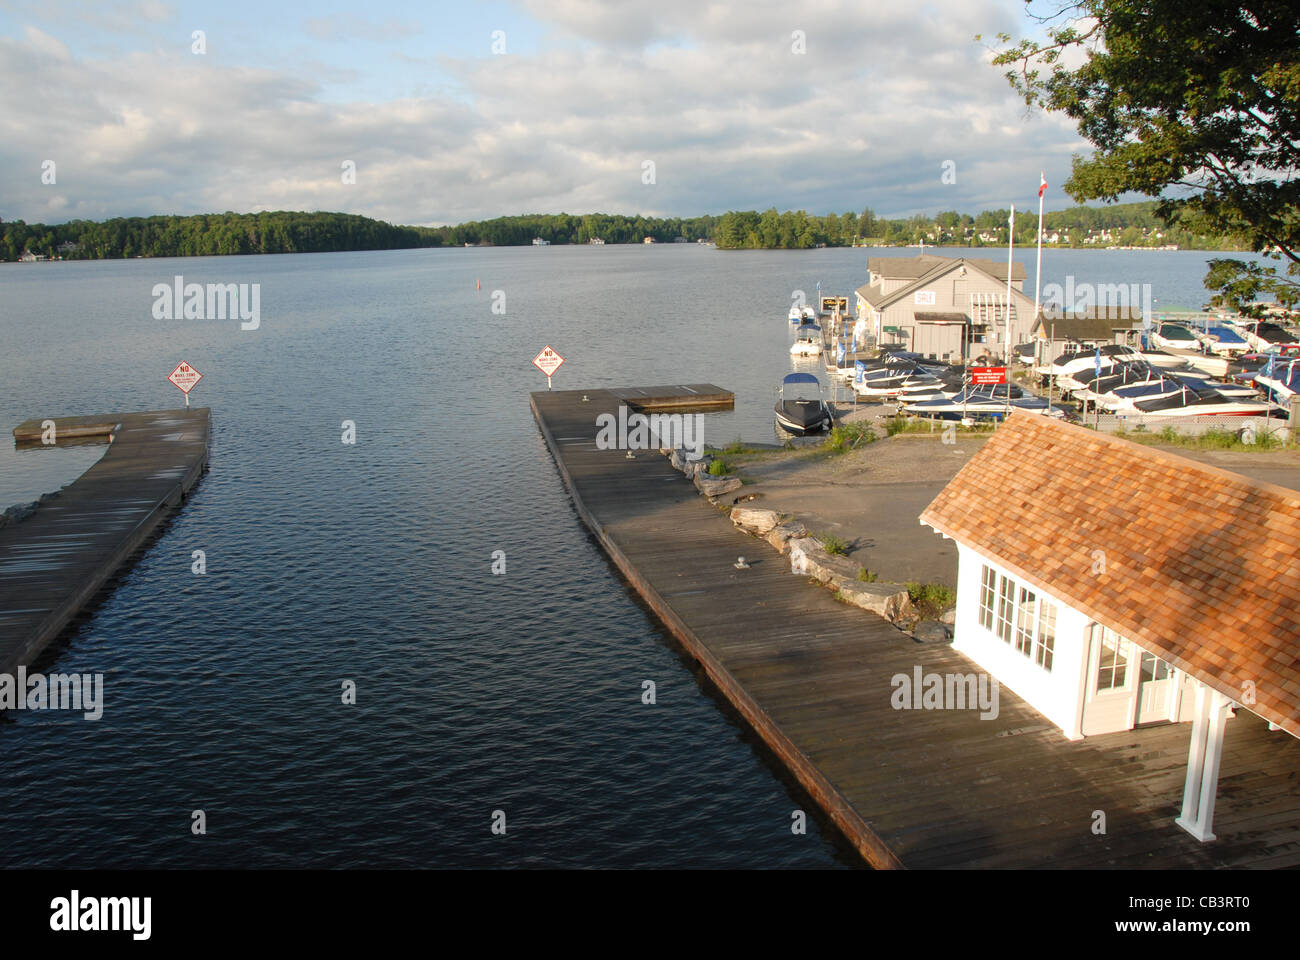 Port Sandfield harbour and marina in the cottage country of Muskoka, Ontario, Canada Stock Photo